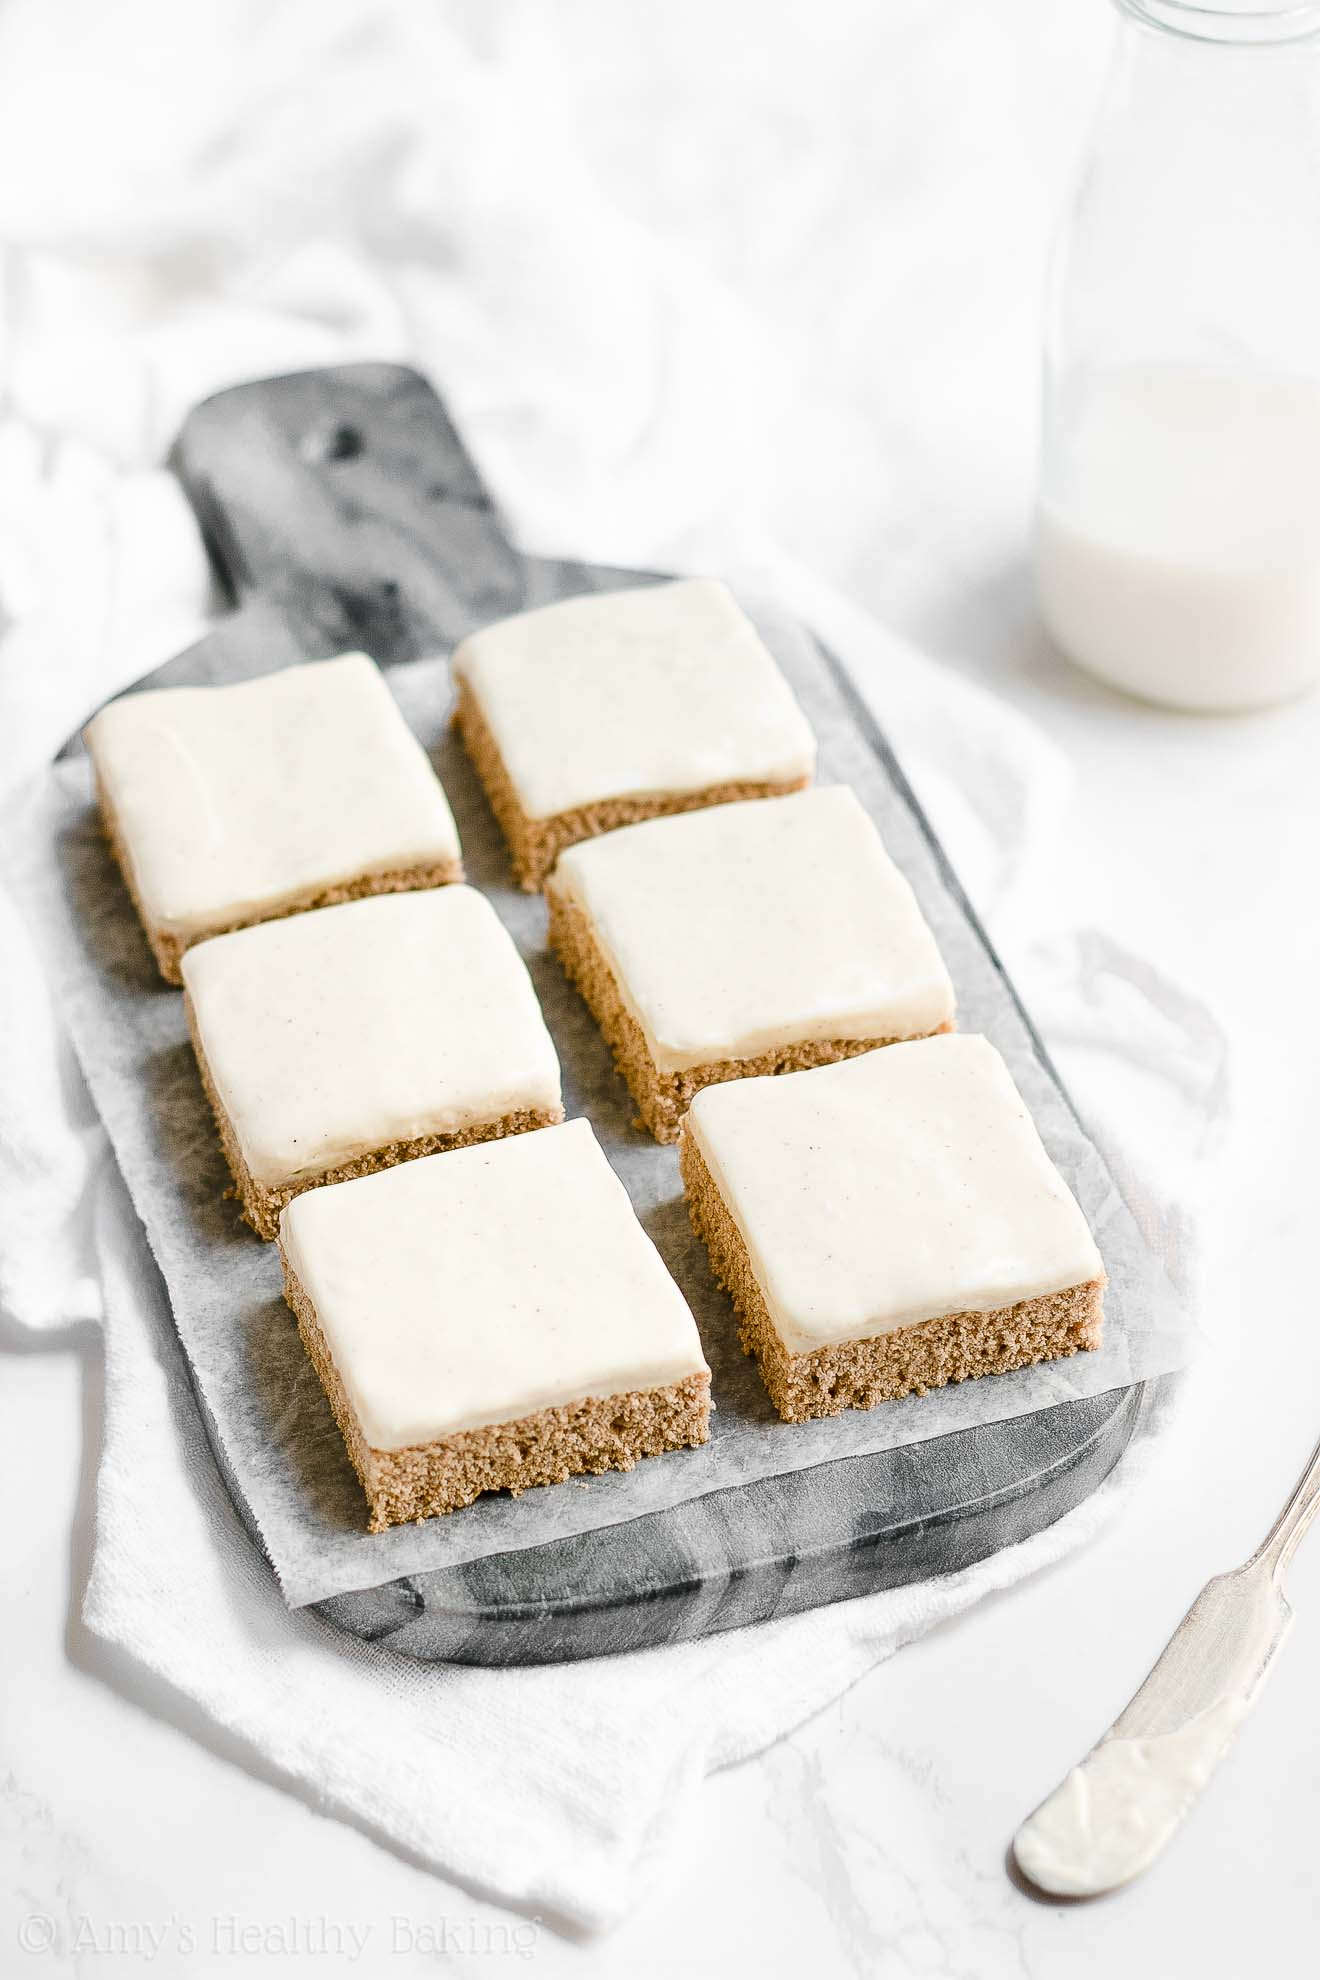 Healthy Cinnamon Roll Cookie Bars with Sugar Free Cream Cheese Frosting